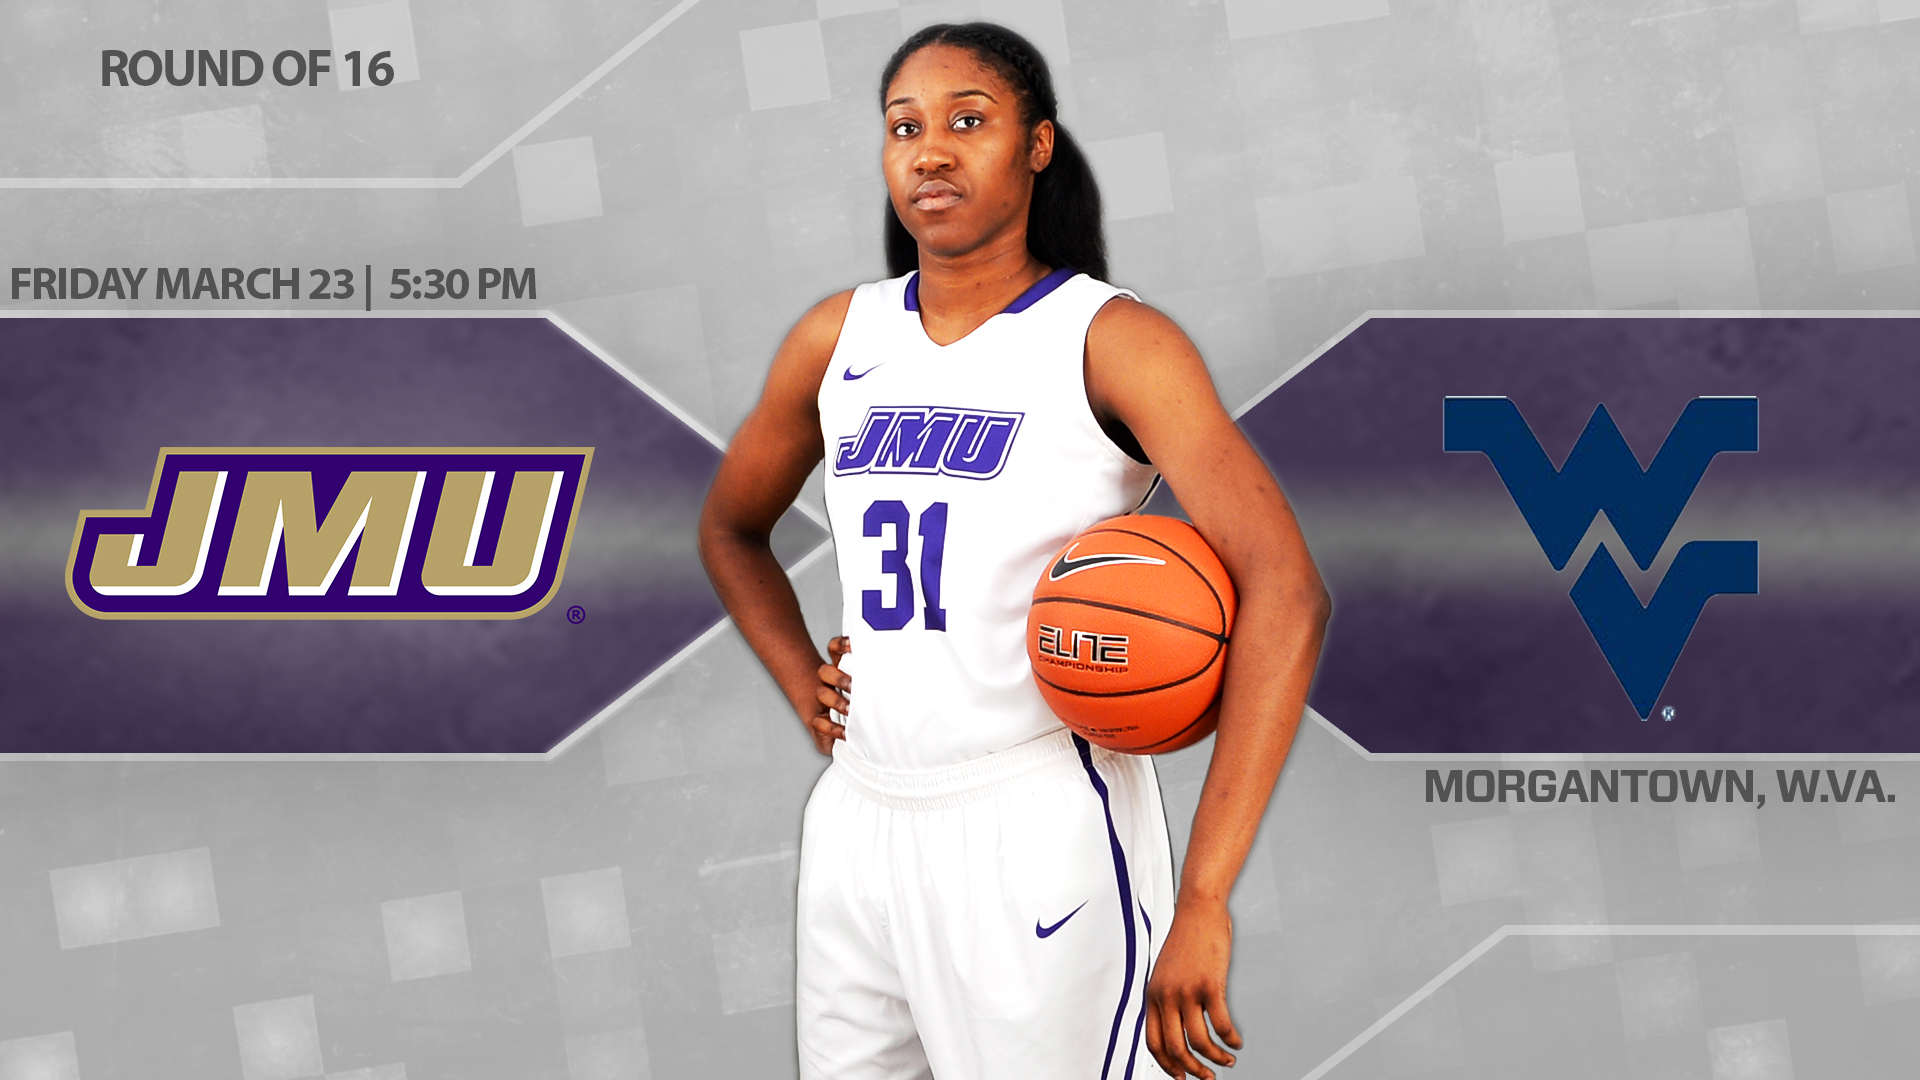 Women's Basketball: Dukes Travel to Morgantown for a WNIT Third-Round Matchup